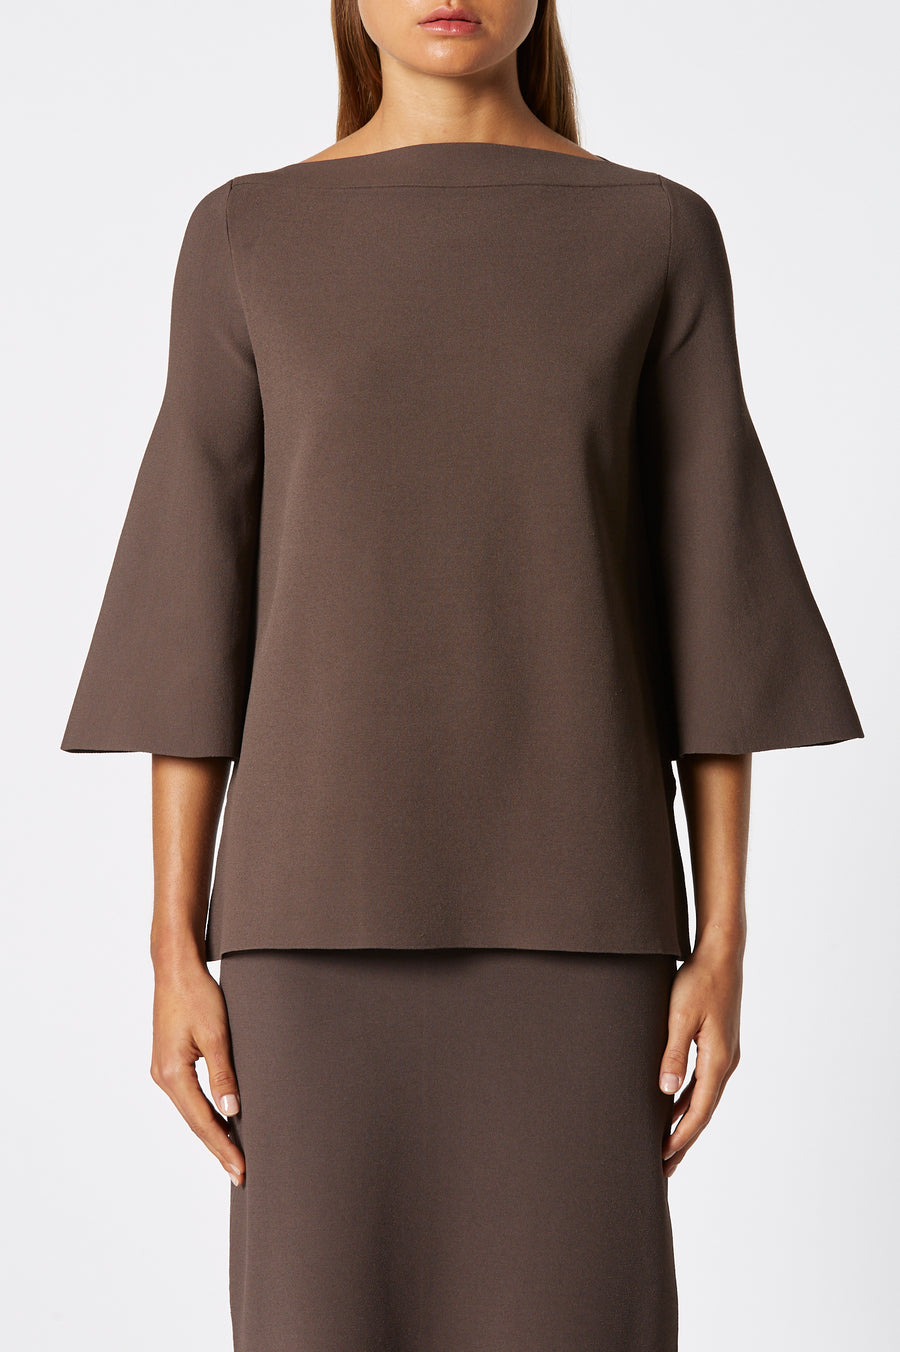 Micro Crepe Boat Neck Sweater, mid-length peplum sleeves, high neckline, Color Cafe